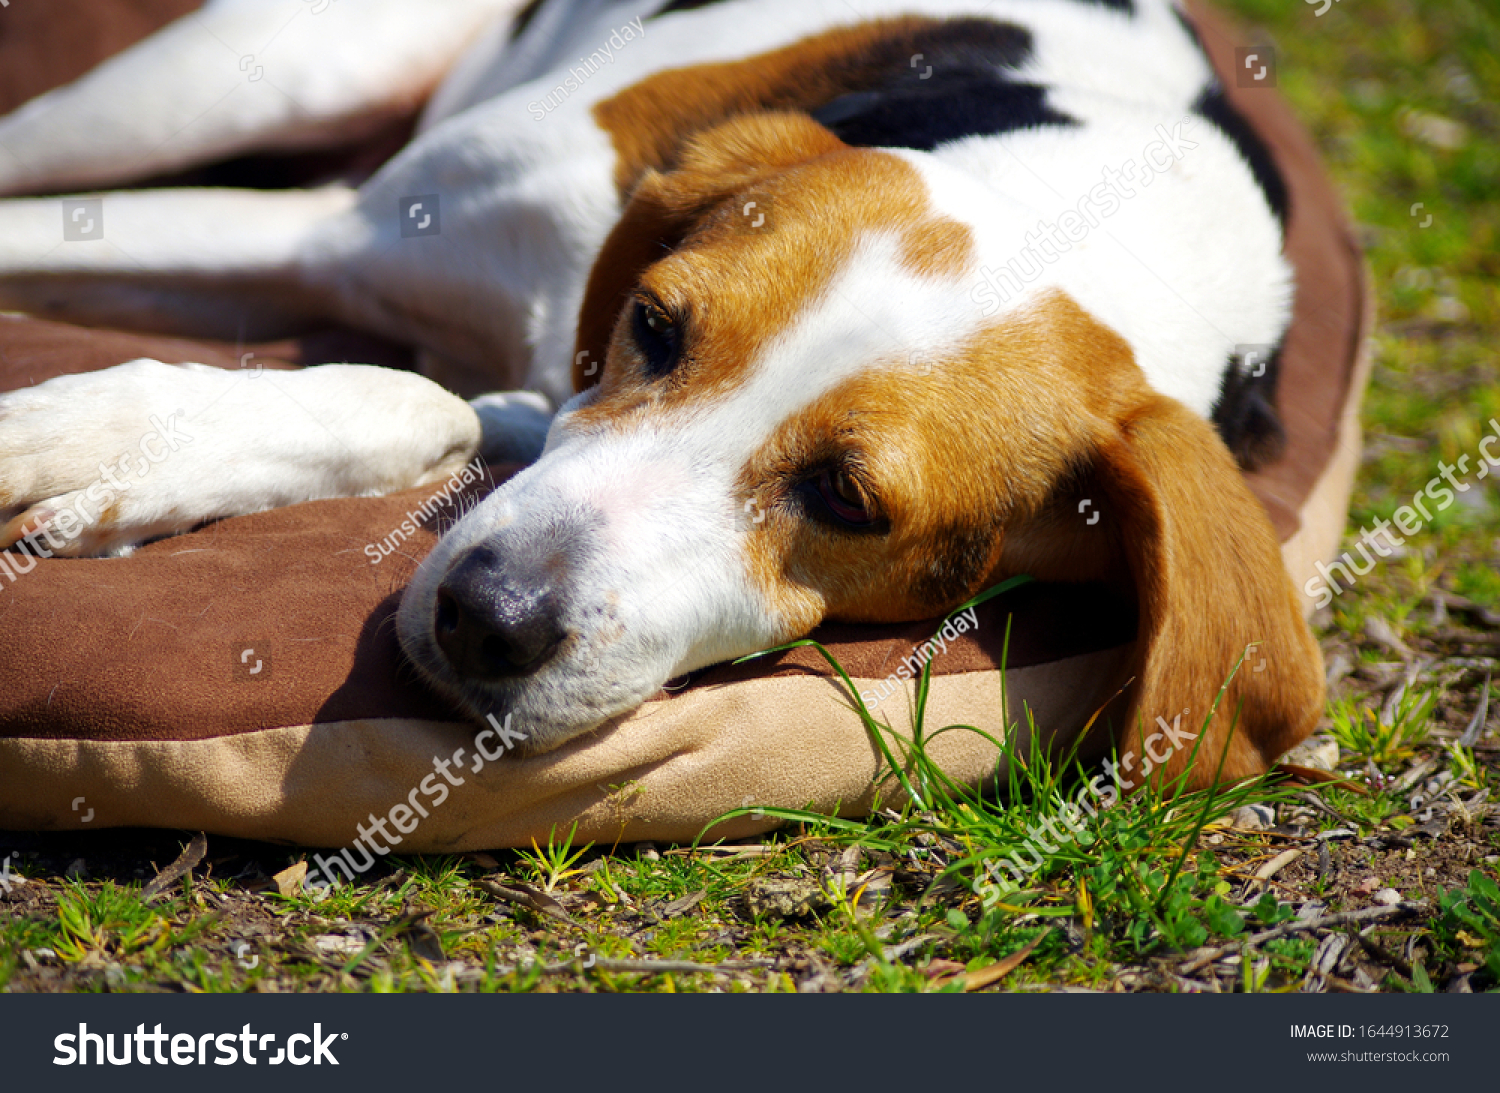 Dog relaxing on a pillow outdoors